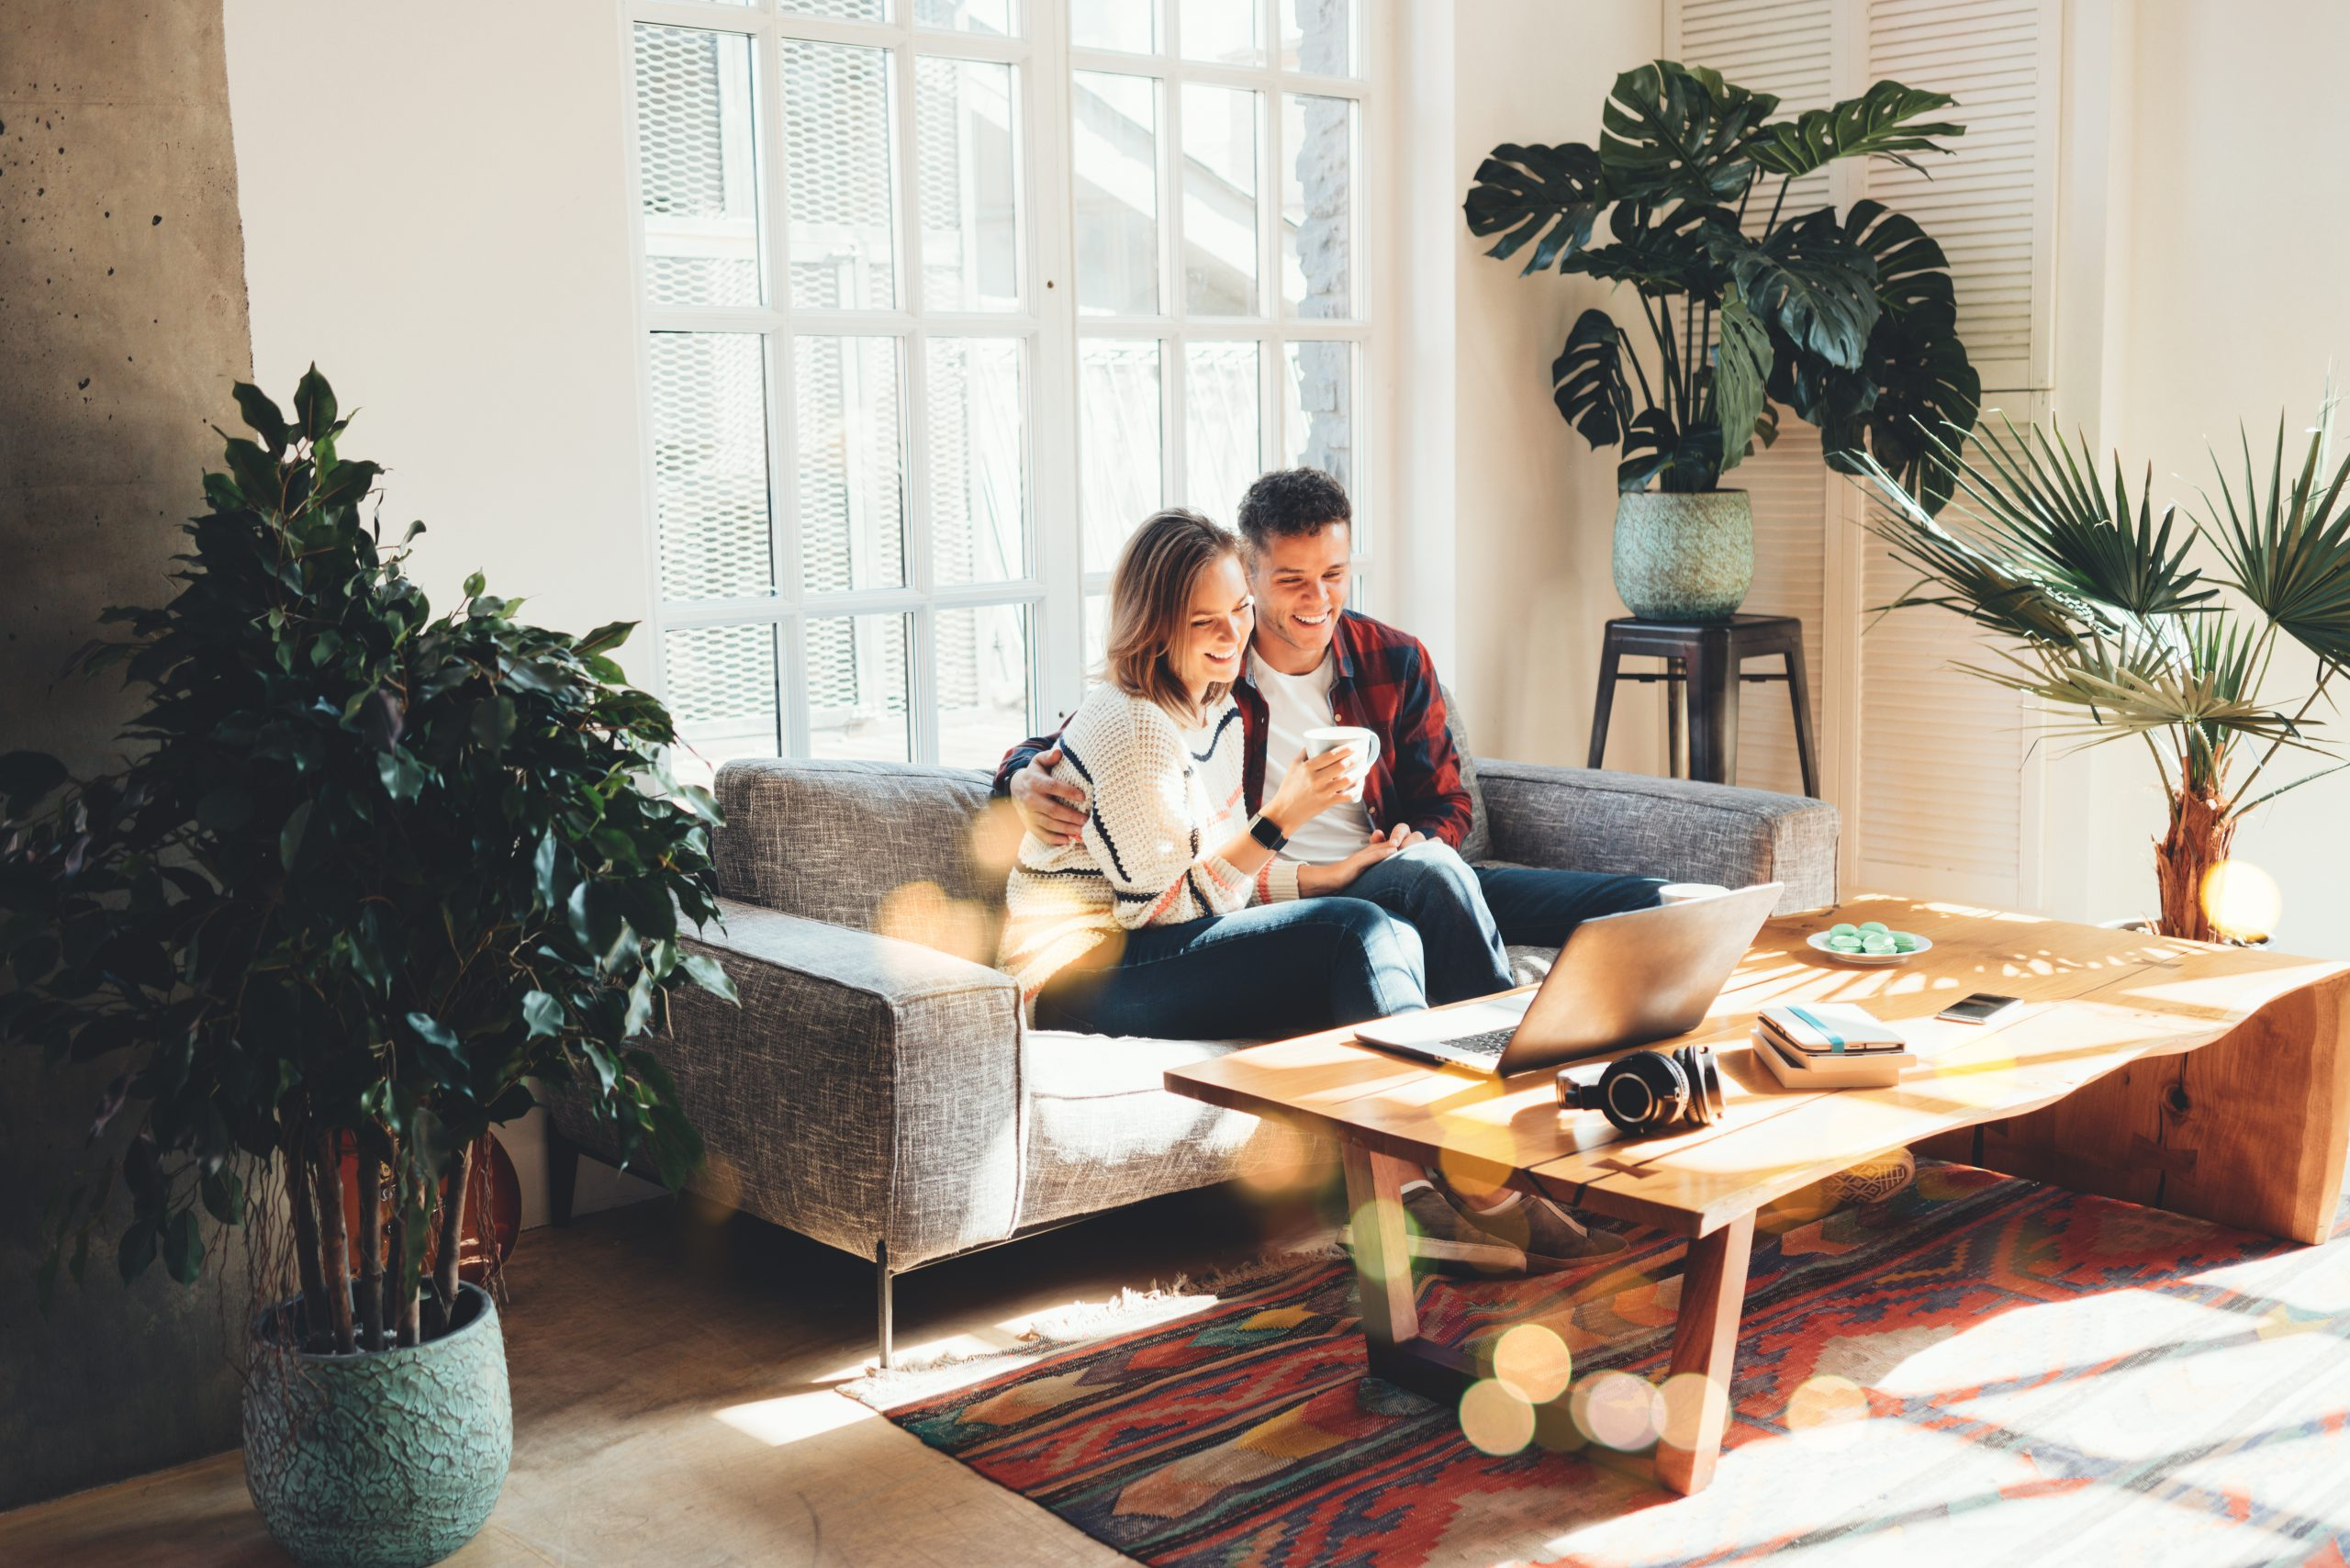 couple on couch in front of window